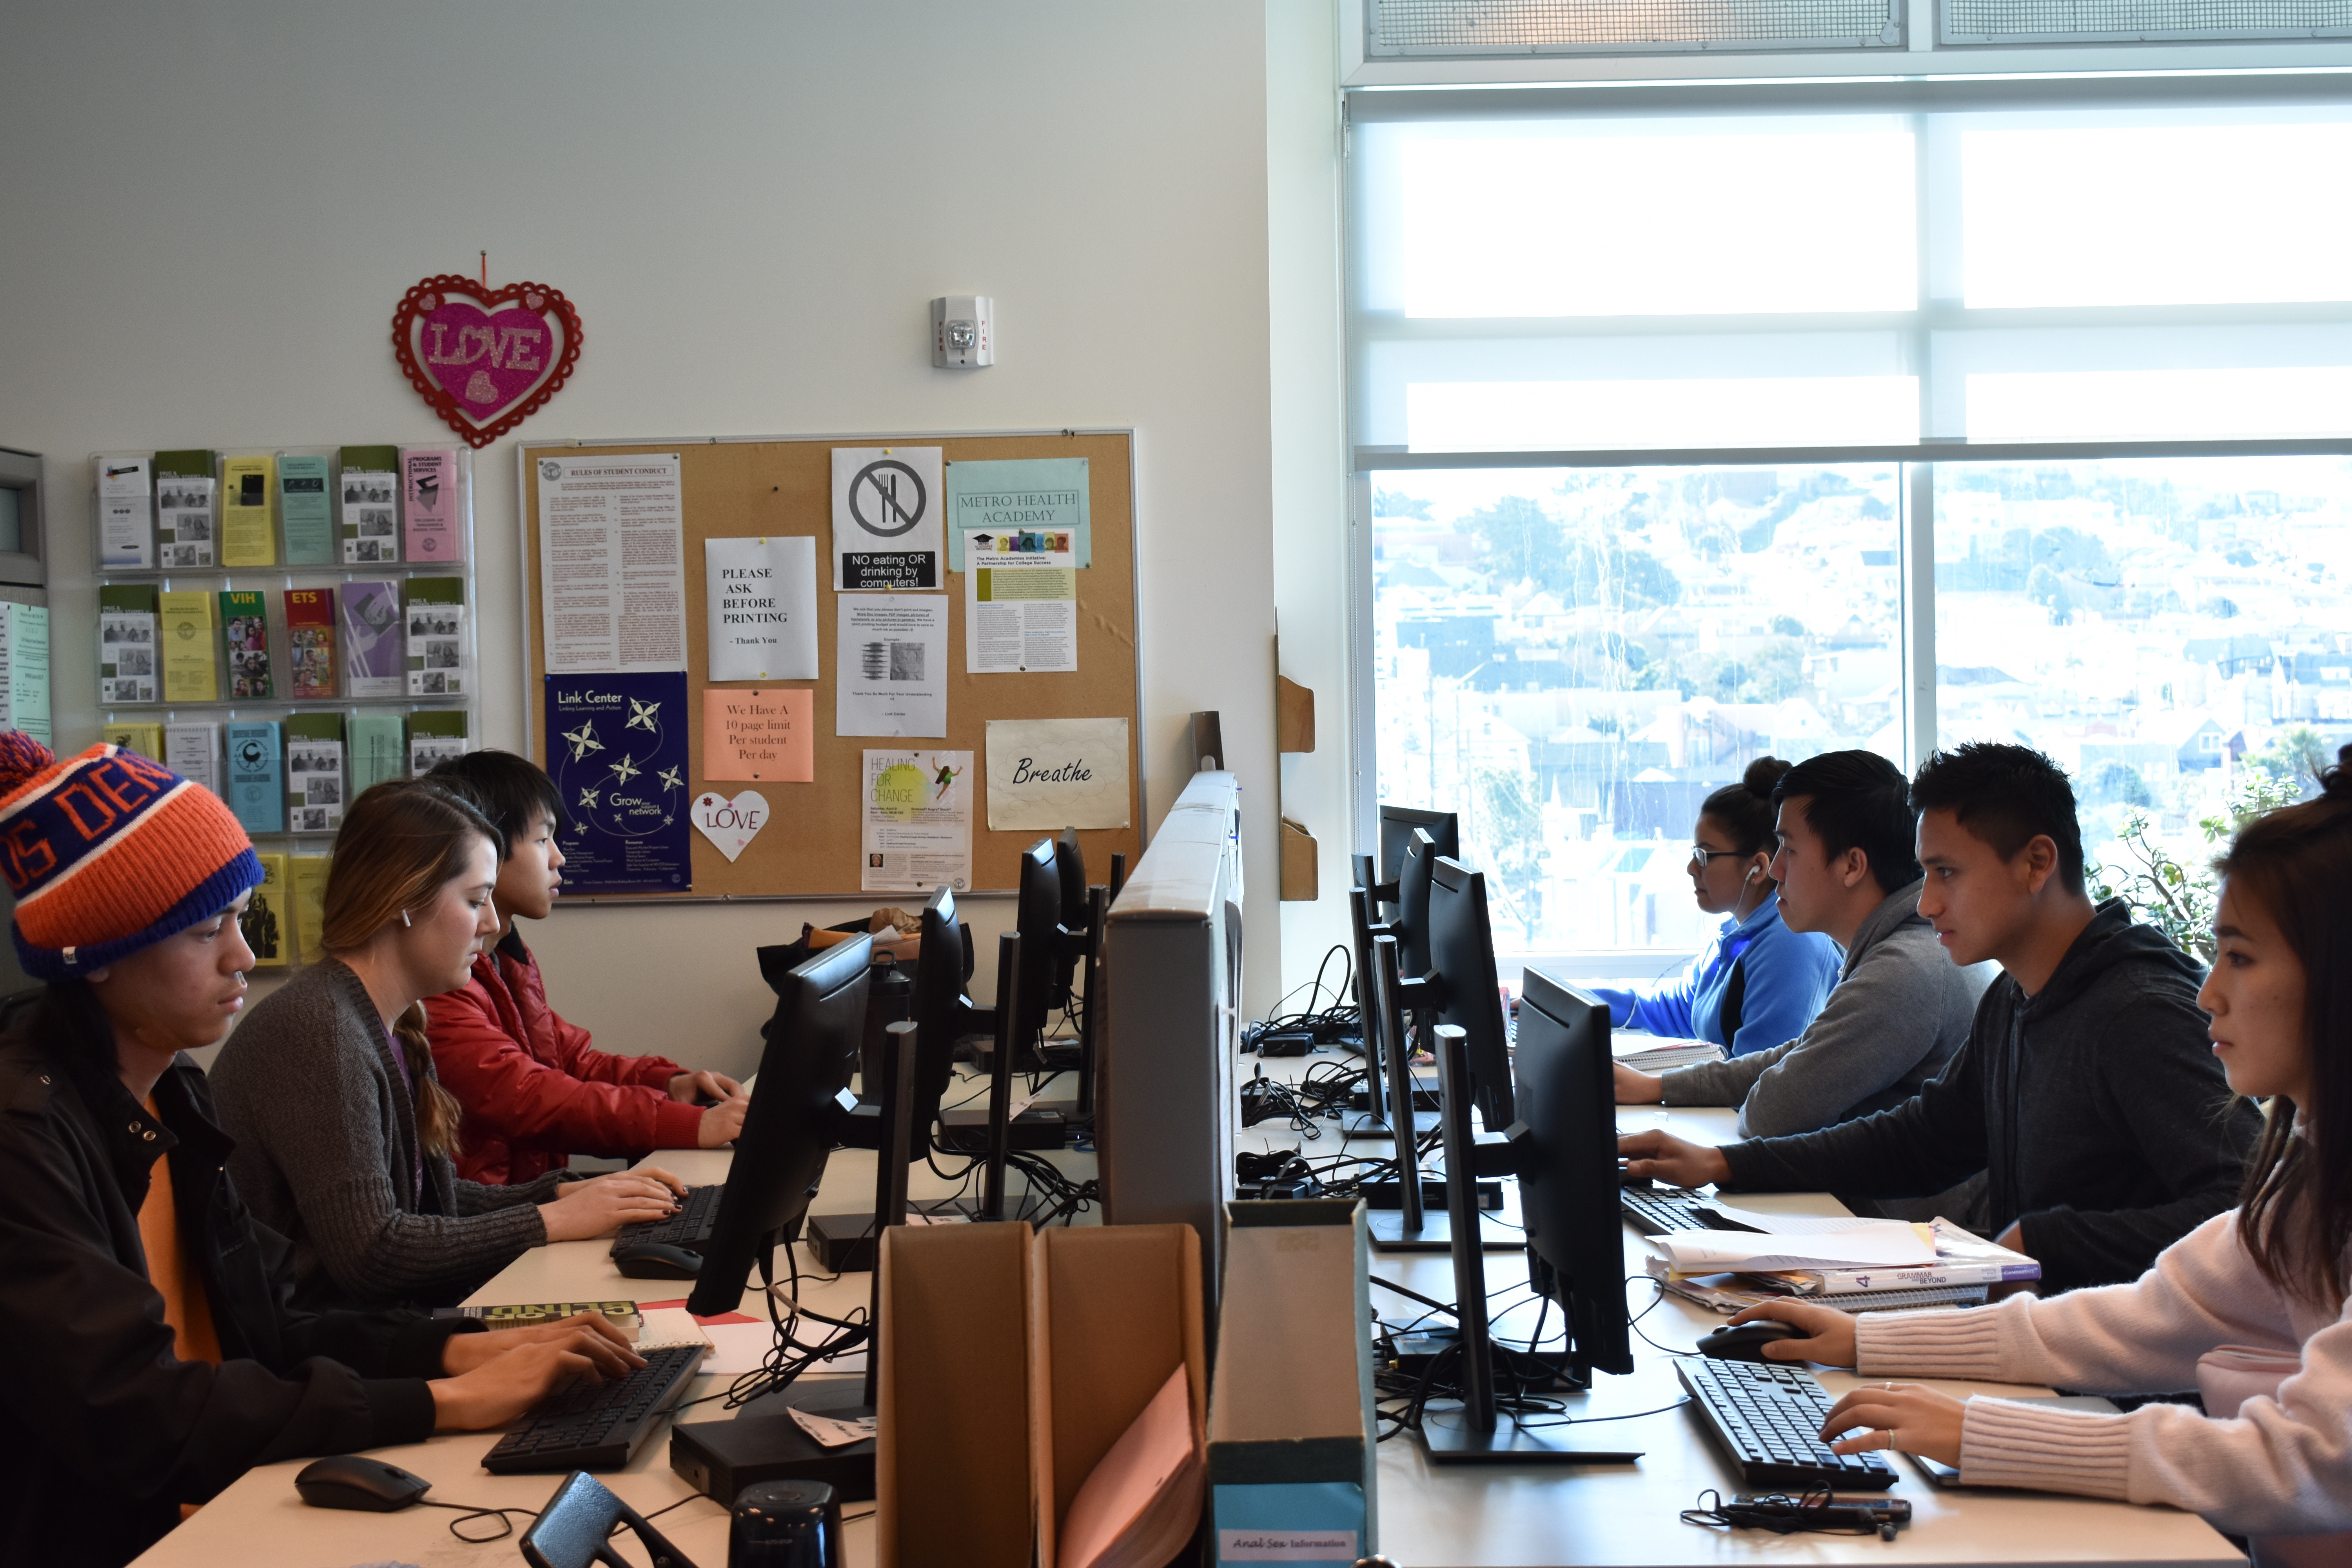 Various students can be seen utilizing the Link Center, MUB 301, for printing and computers in between classes on Feb. 15, 2017. Photo by Veronica Steiner/The Guardsman.